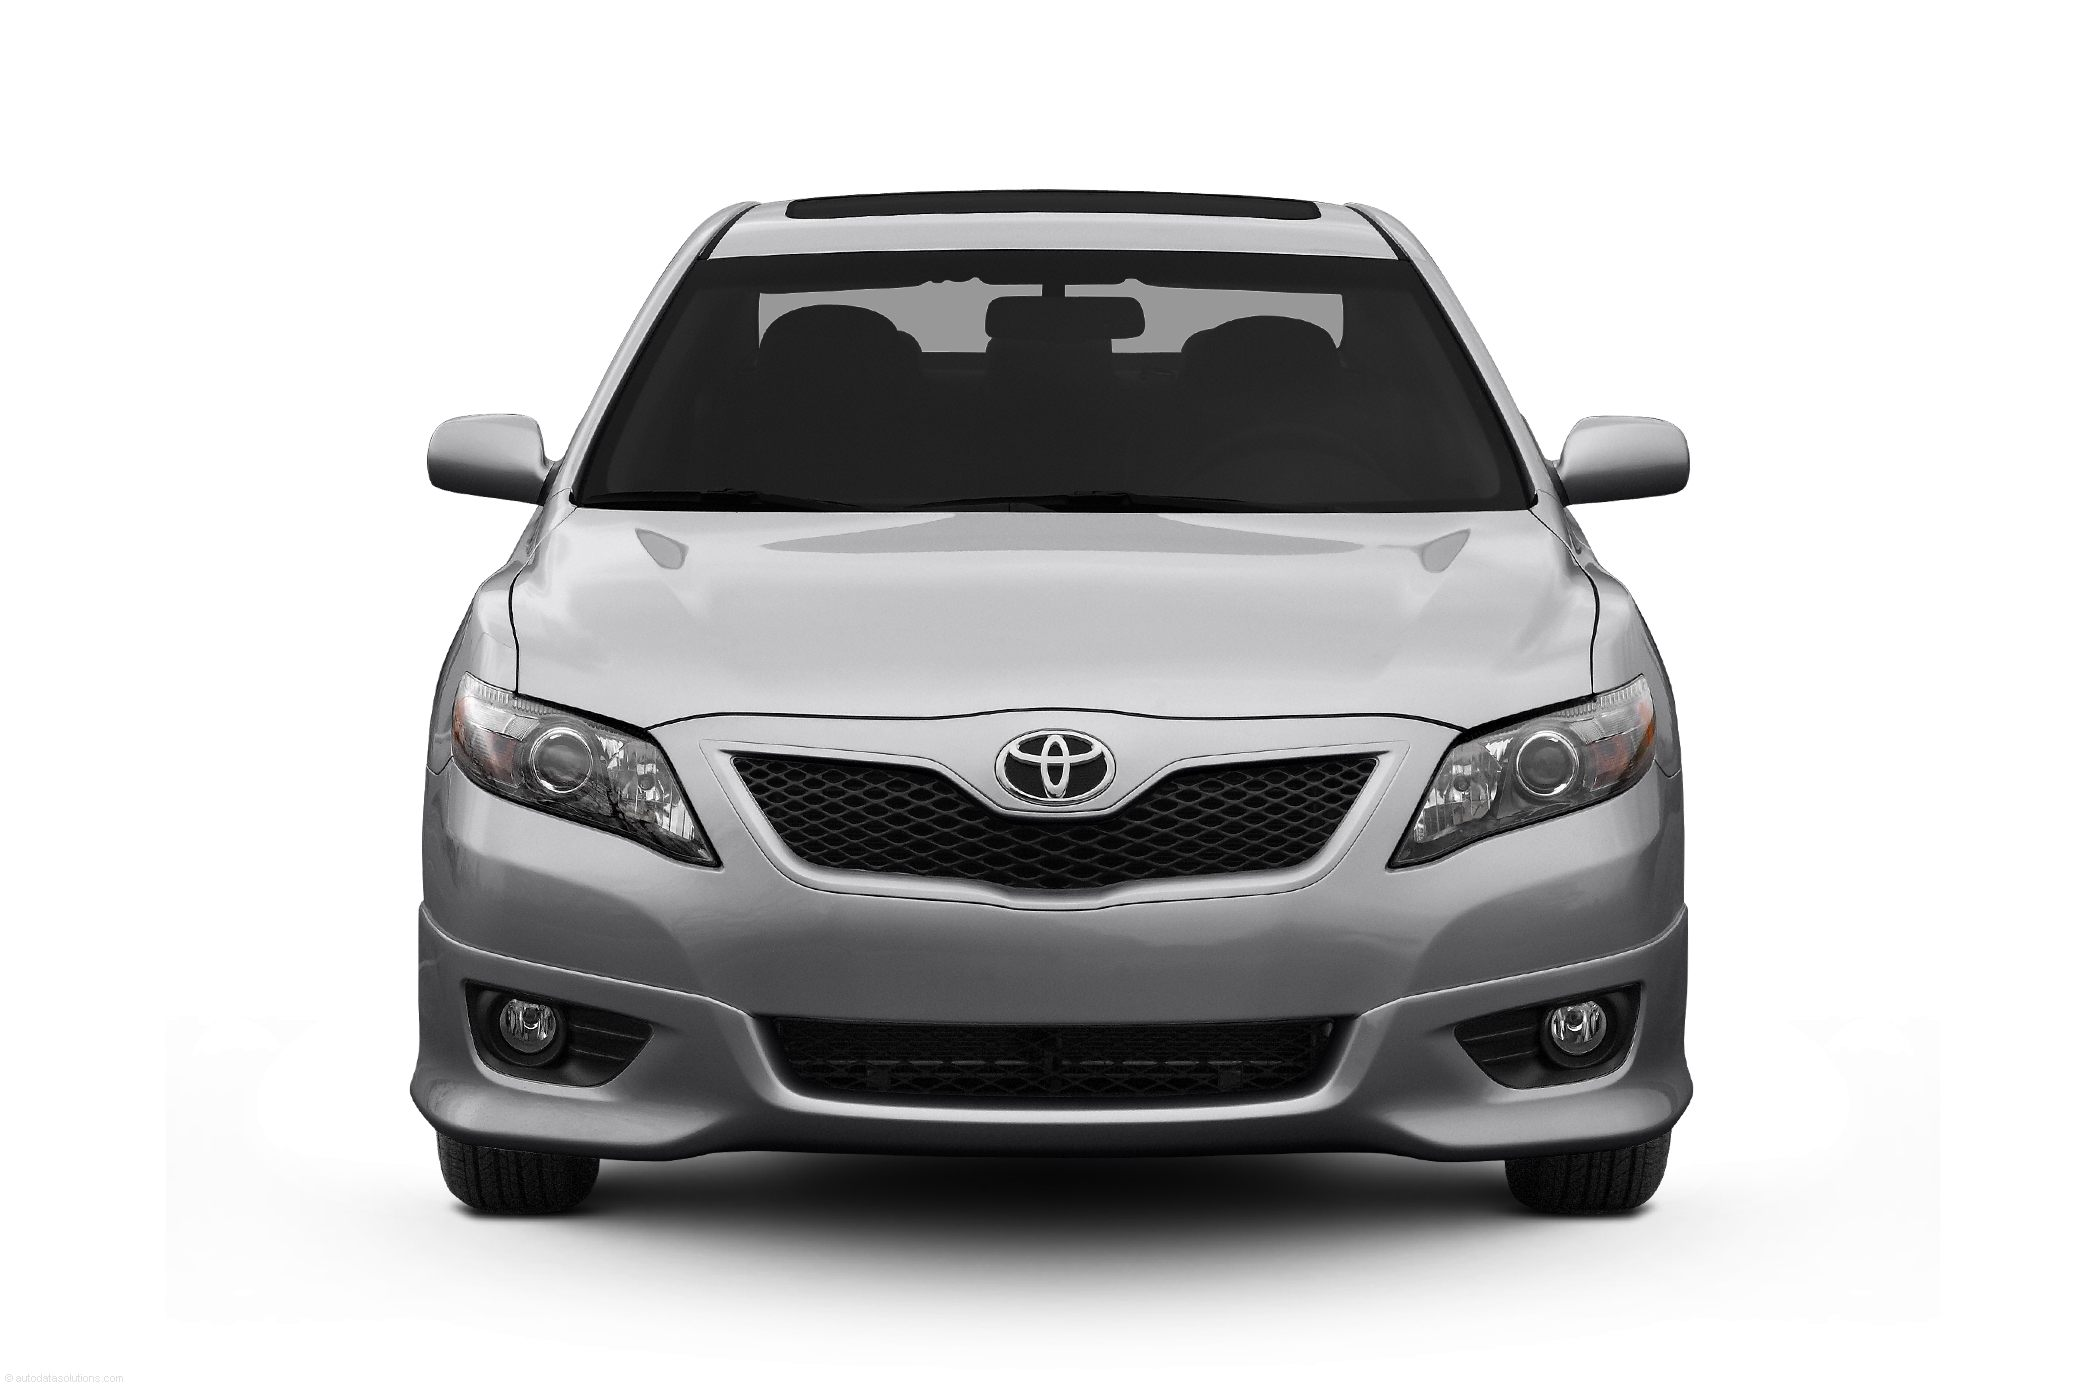 Front Of Car Png - Car Front View Png, png collections at sccpre.cat